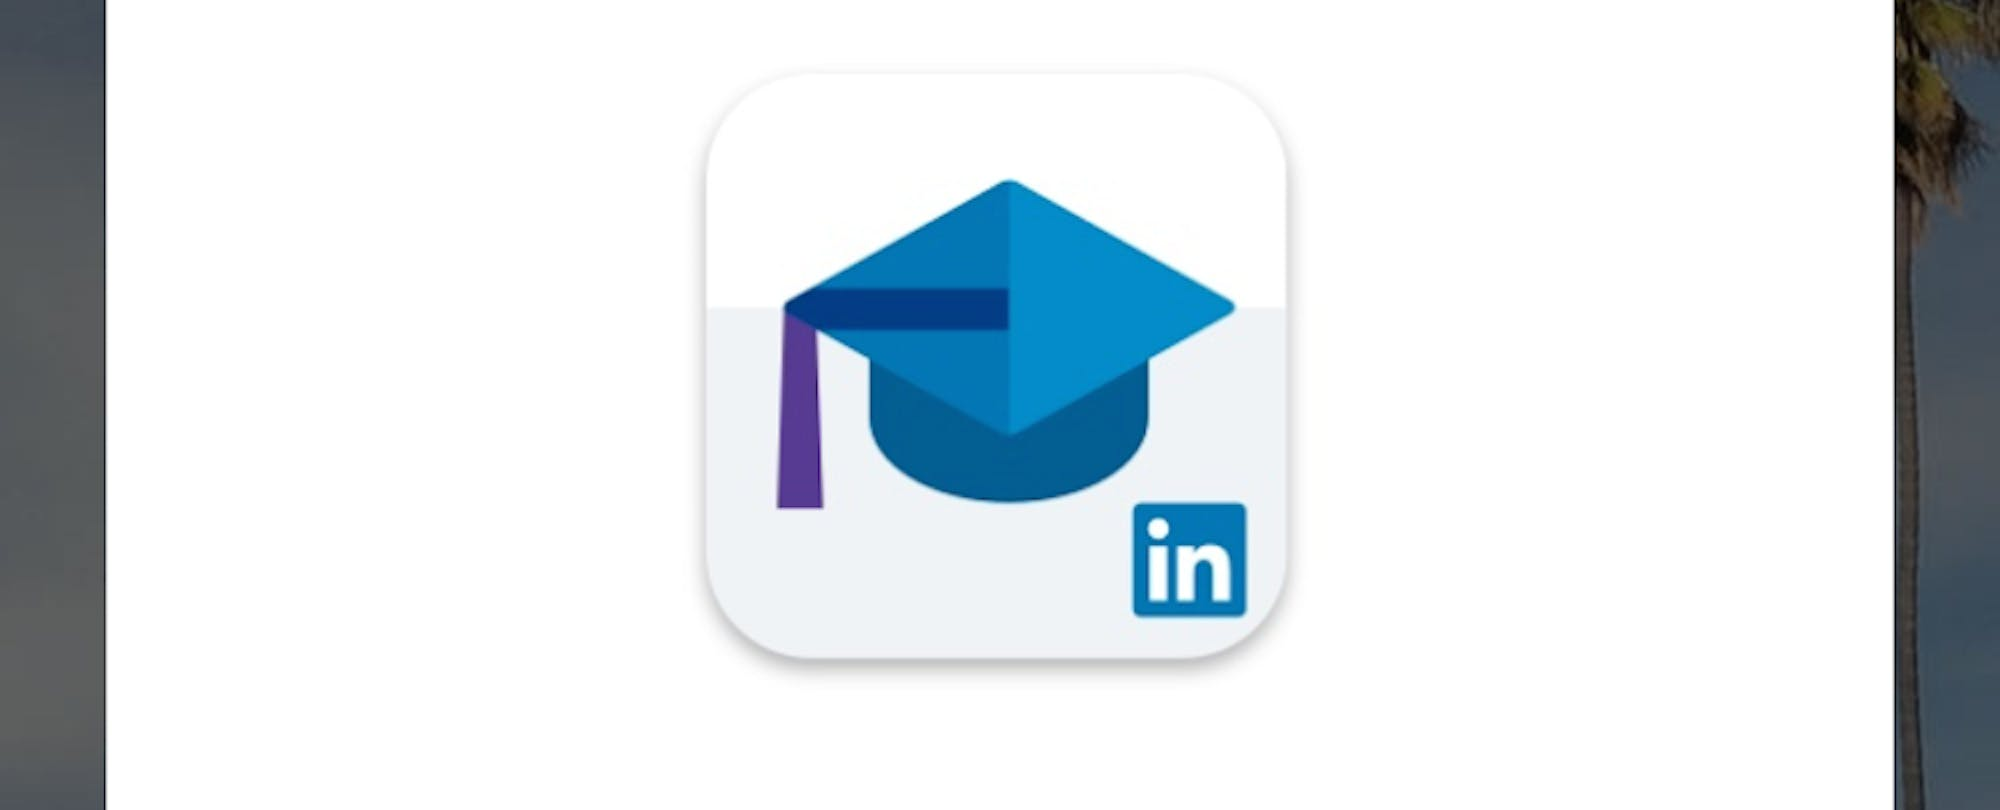 LinkedIn Launches Standalone App Aimed at Job-Seeking Recent Graduates